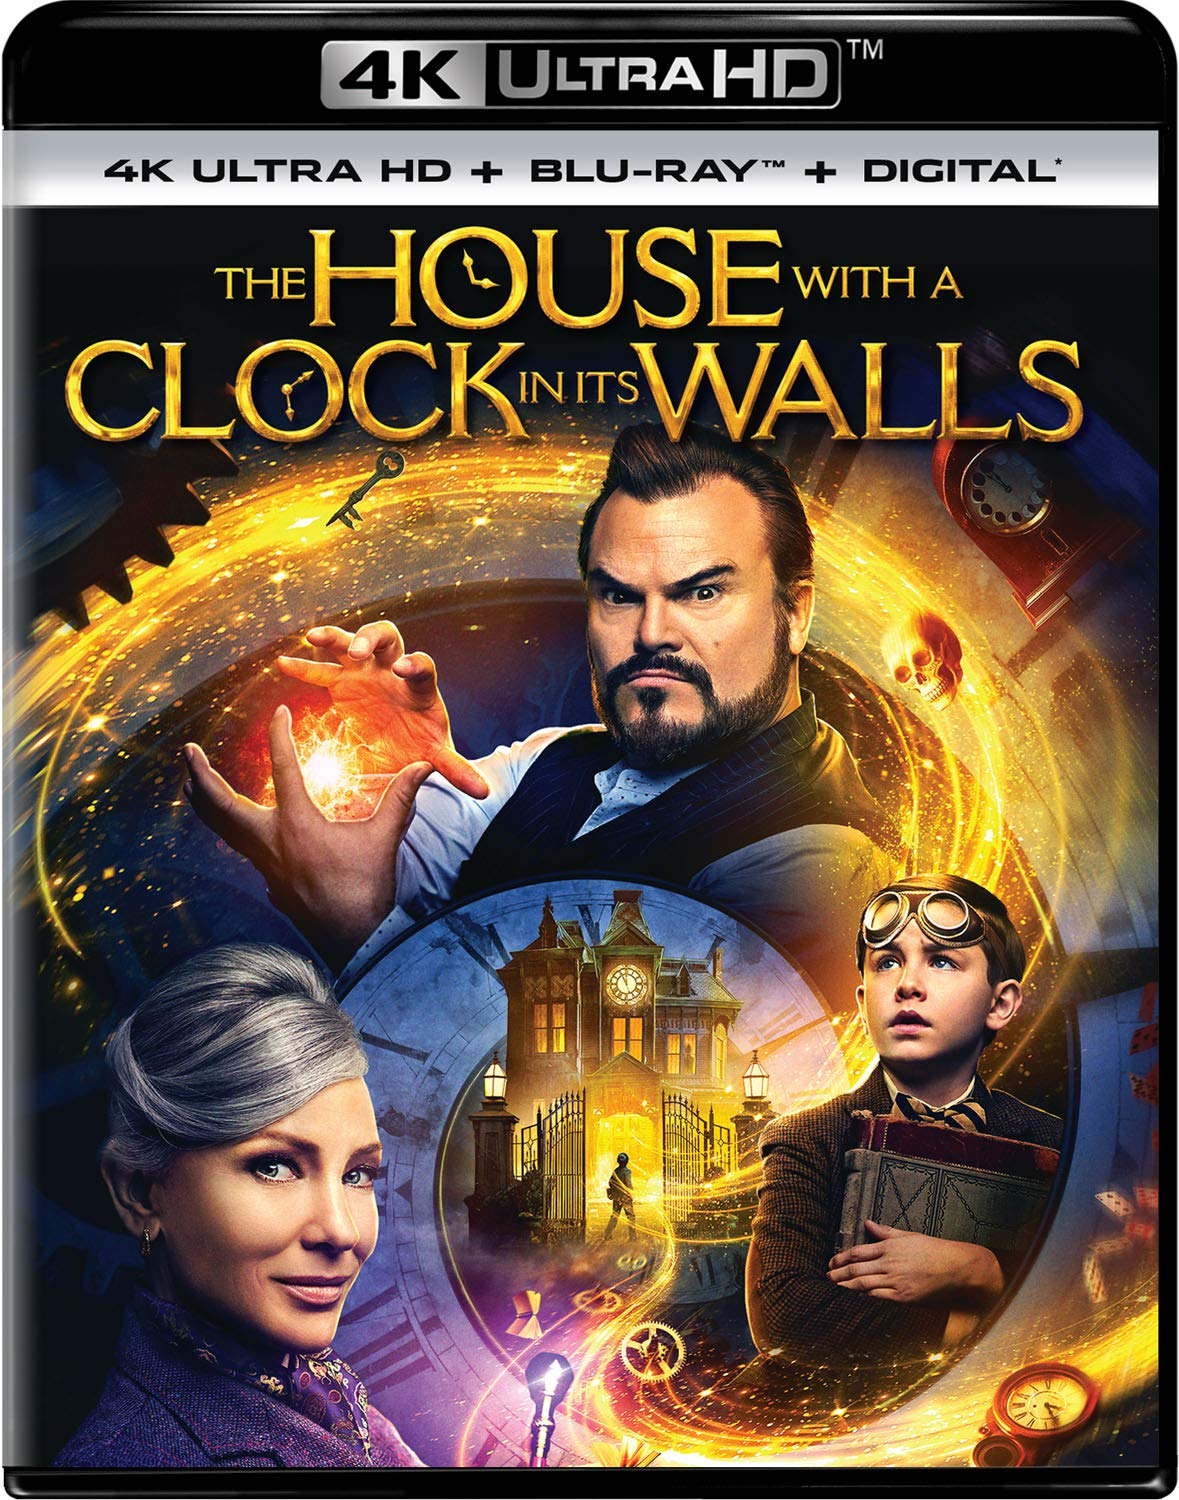 4K Blu-ray : The House With A Clock In Its Walls (With Blu-ray, 4K Mastering, 2 Pack, Digital Copy)